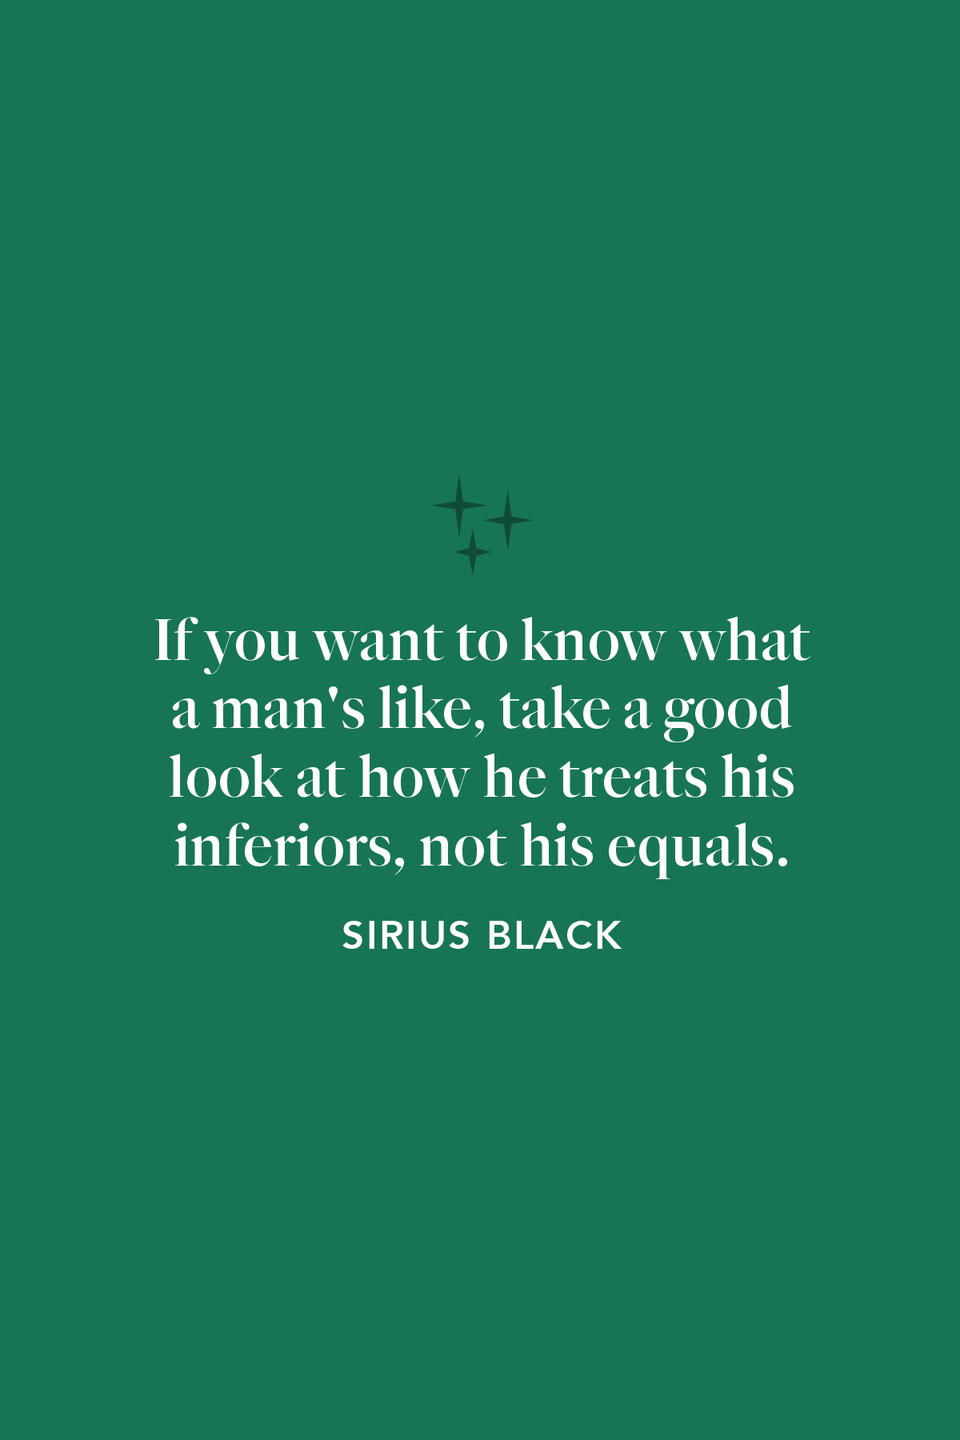 """<p>""""If you want to know what a man's like, take a good look at how he treats his inferiors, not his equals,"""" Sirius Black said in <em>The Goblet of Fire</em>.</p>"""